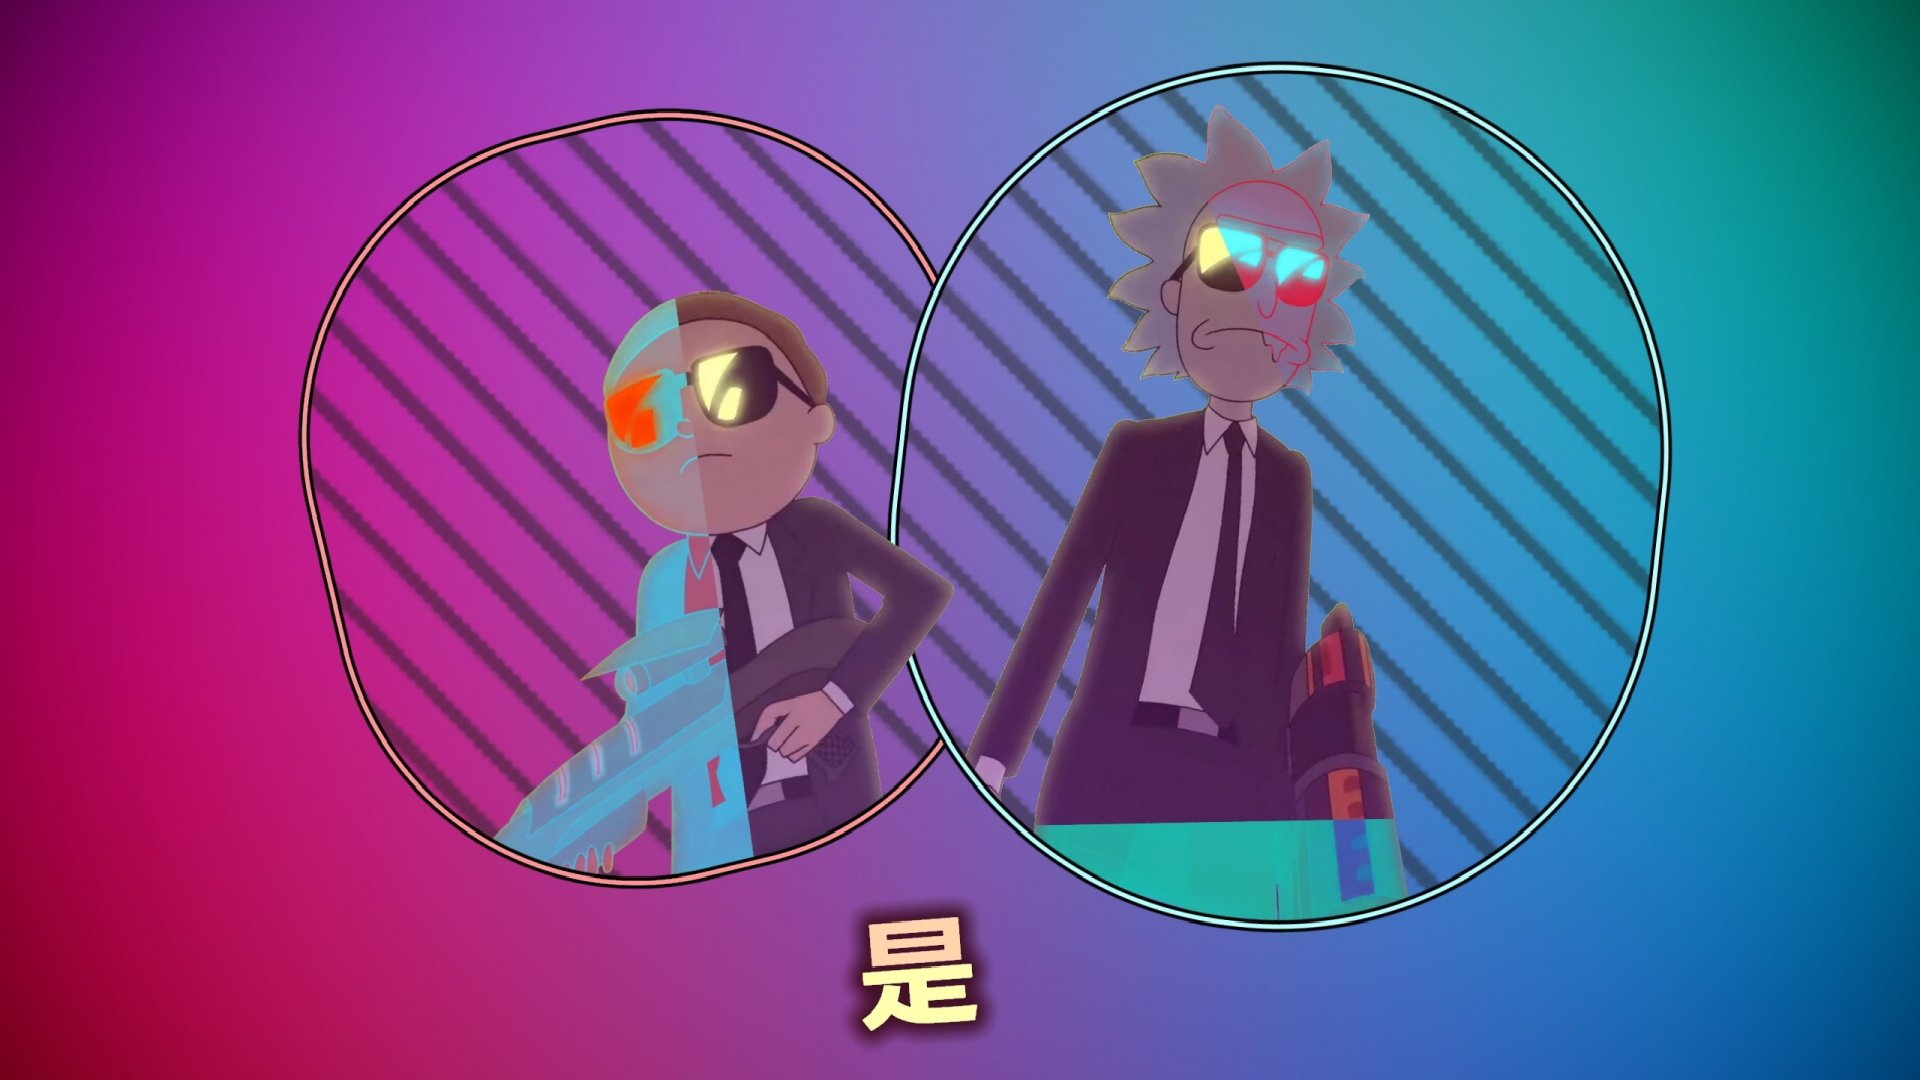 Rick And Morty Retrowave Wallpaper Photo MeWallpaper 1920x1080